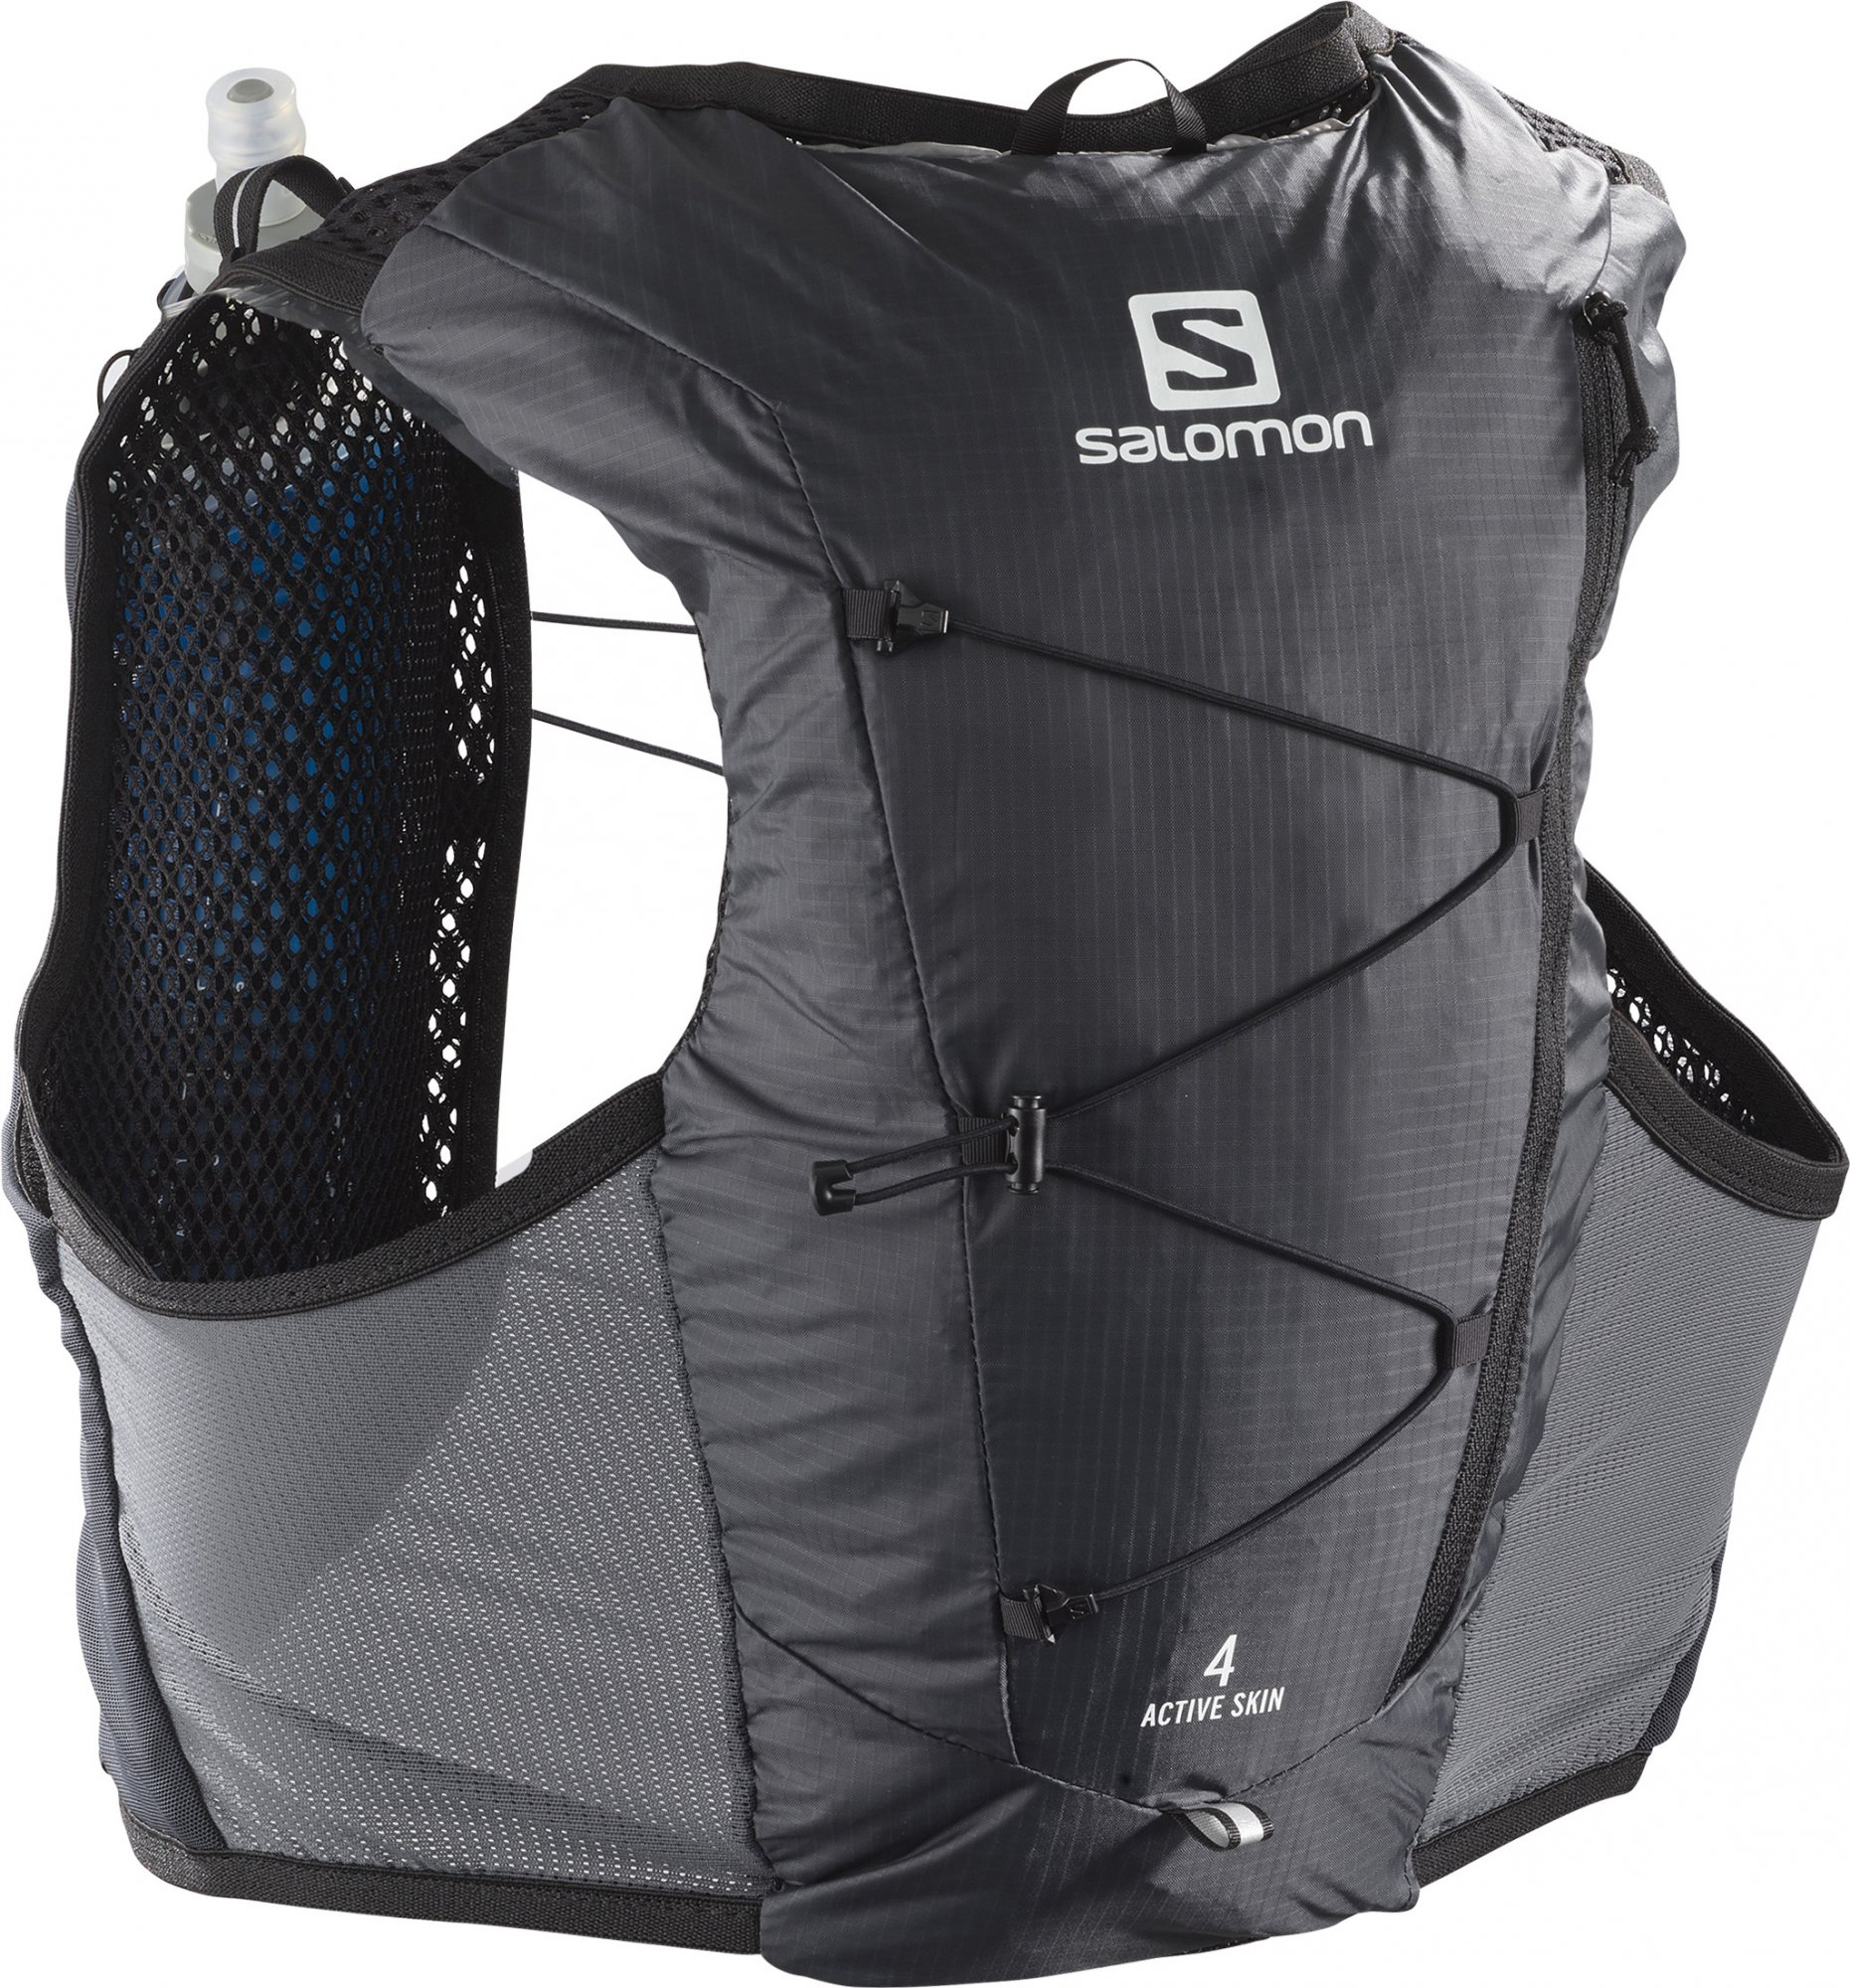 SALOMON ACTIVE SKIN 4 SET EBONY/BLACK